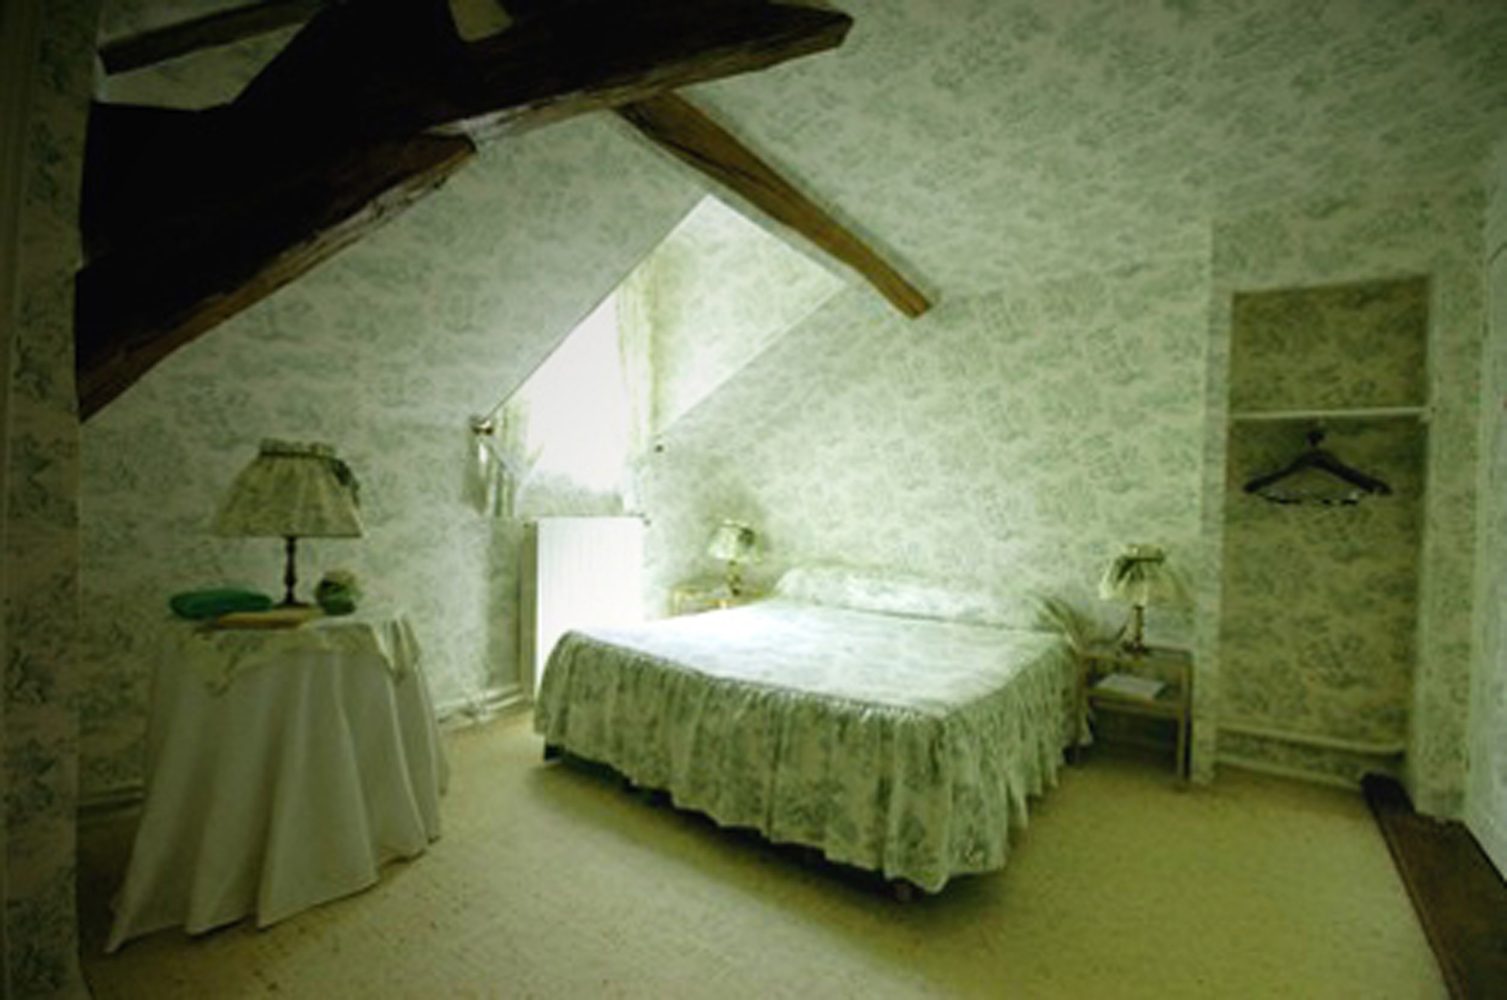 Chambre D Hote Valencay Chateau Dangy Les Chambres